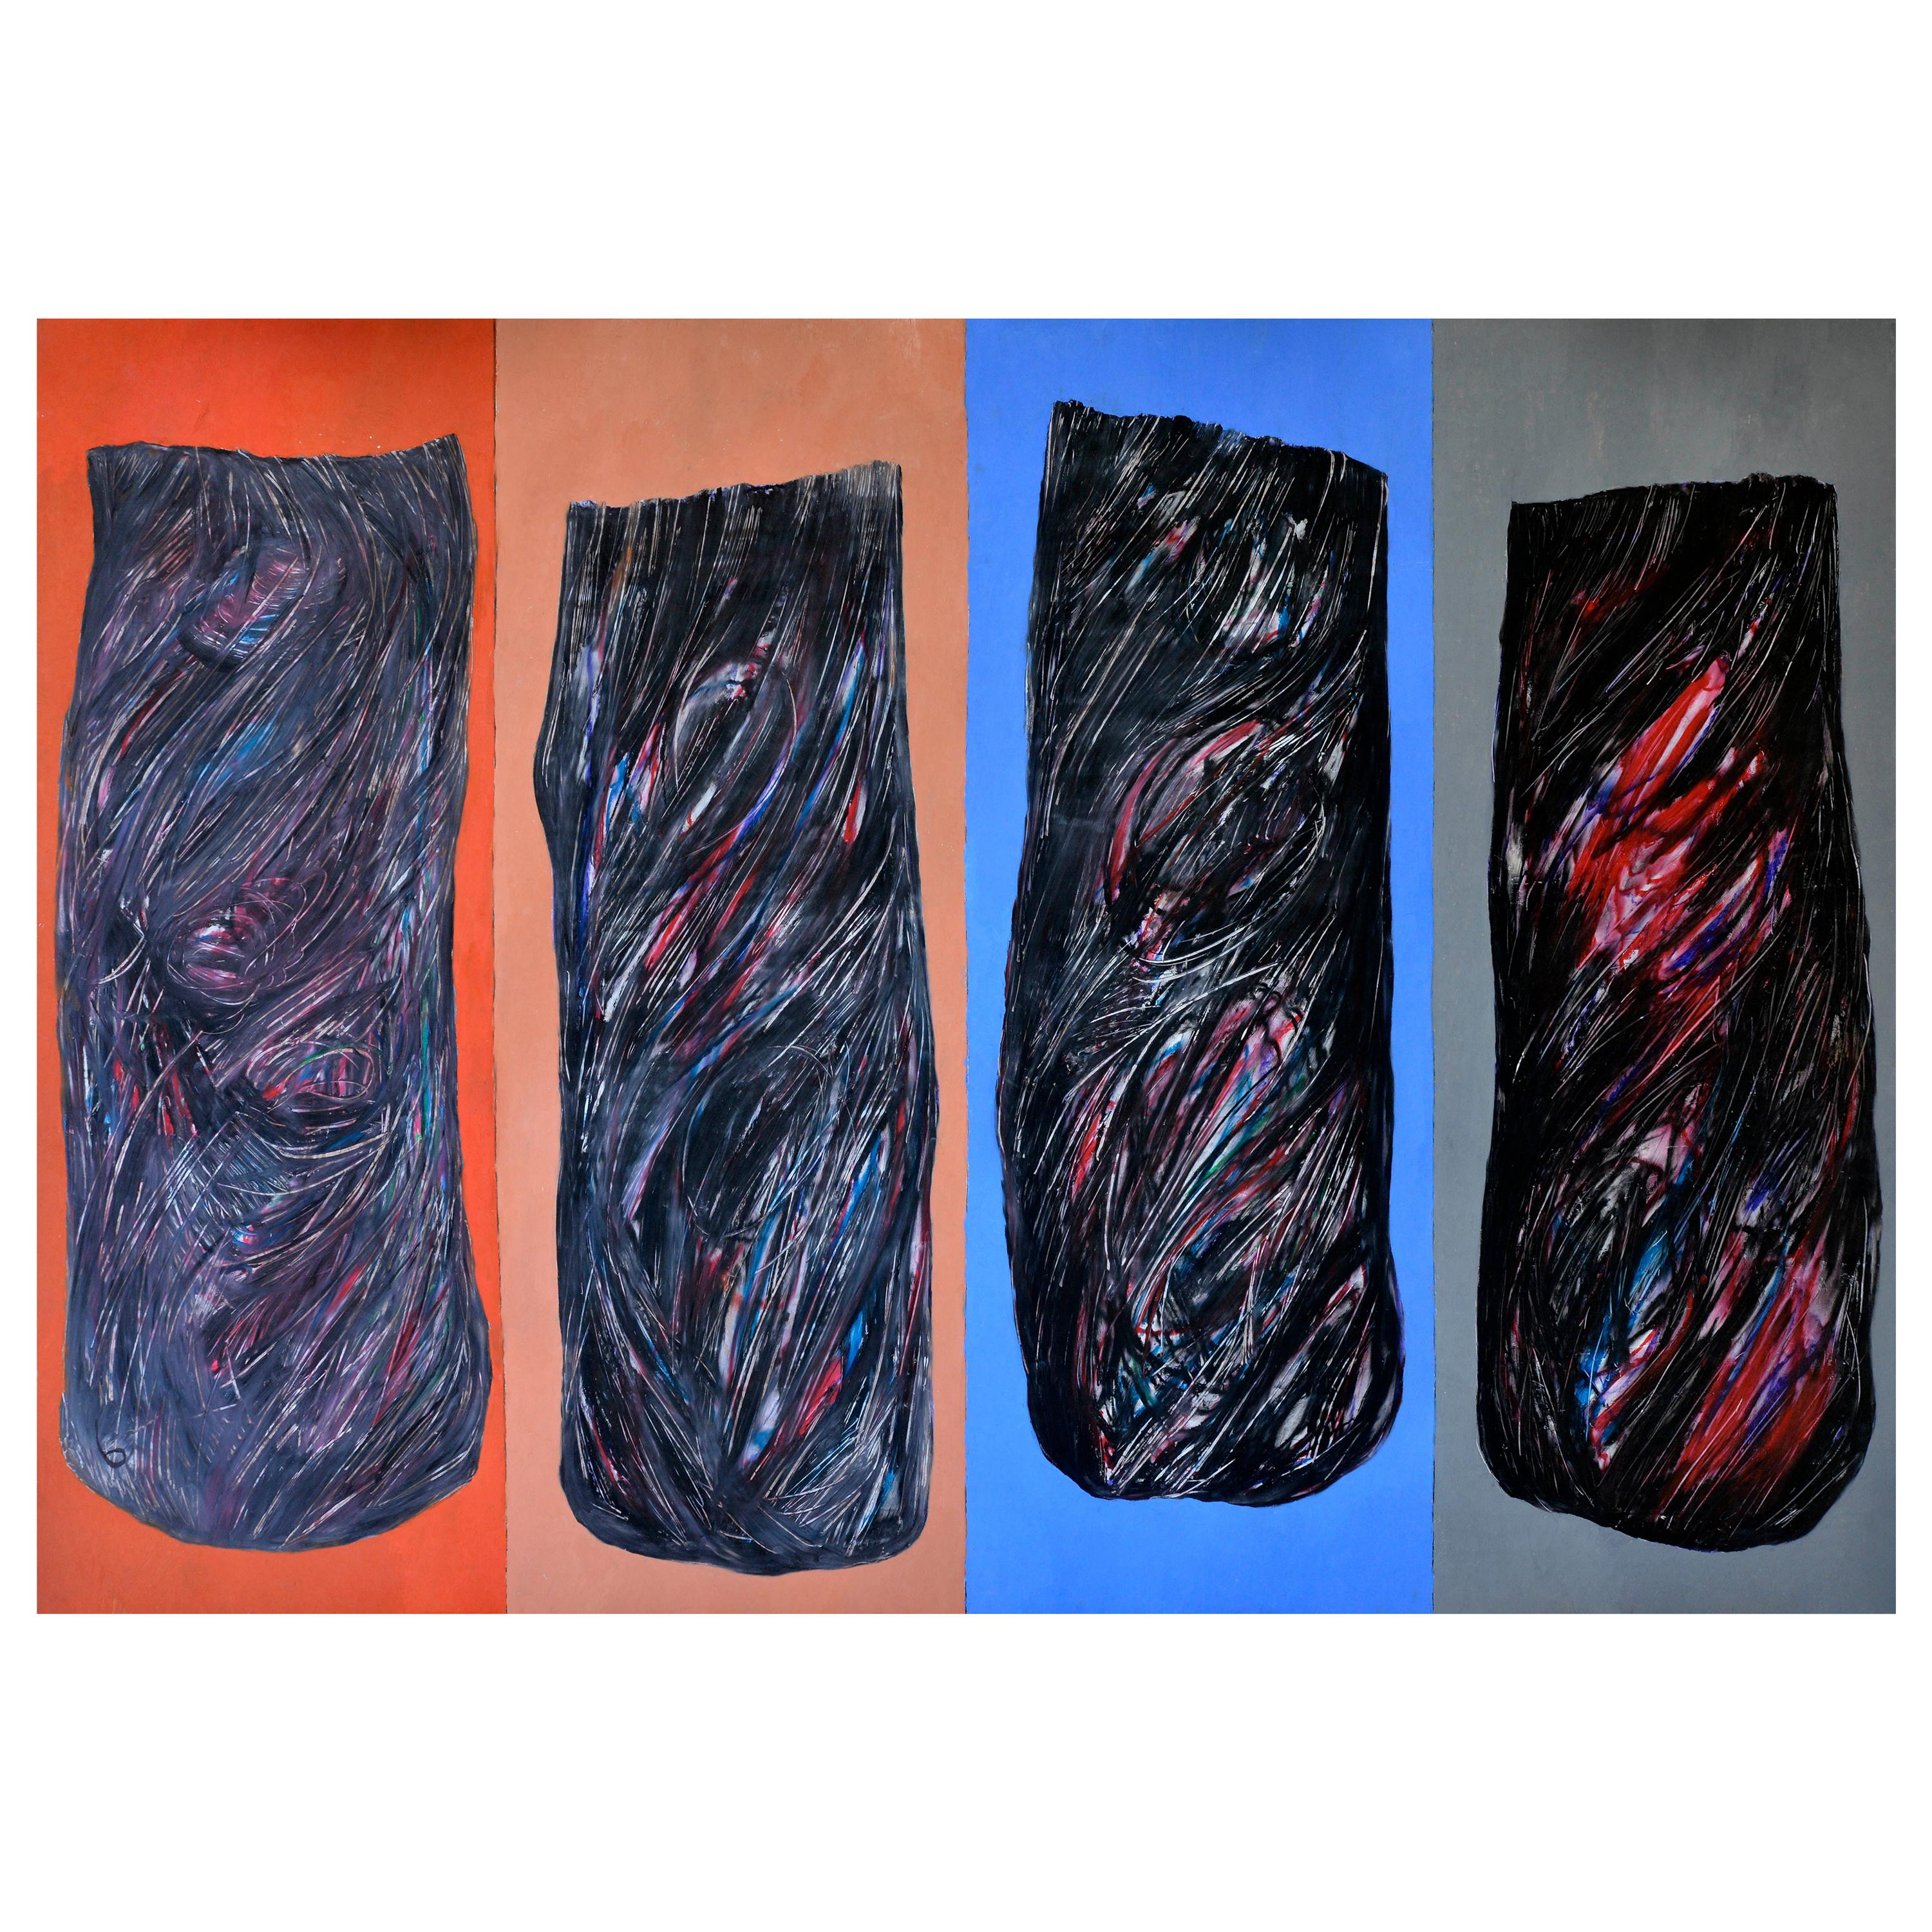 Abstract Black Shades on a Blue and red  Background, circa 1992